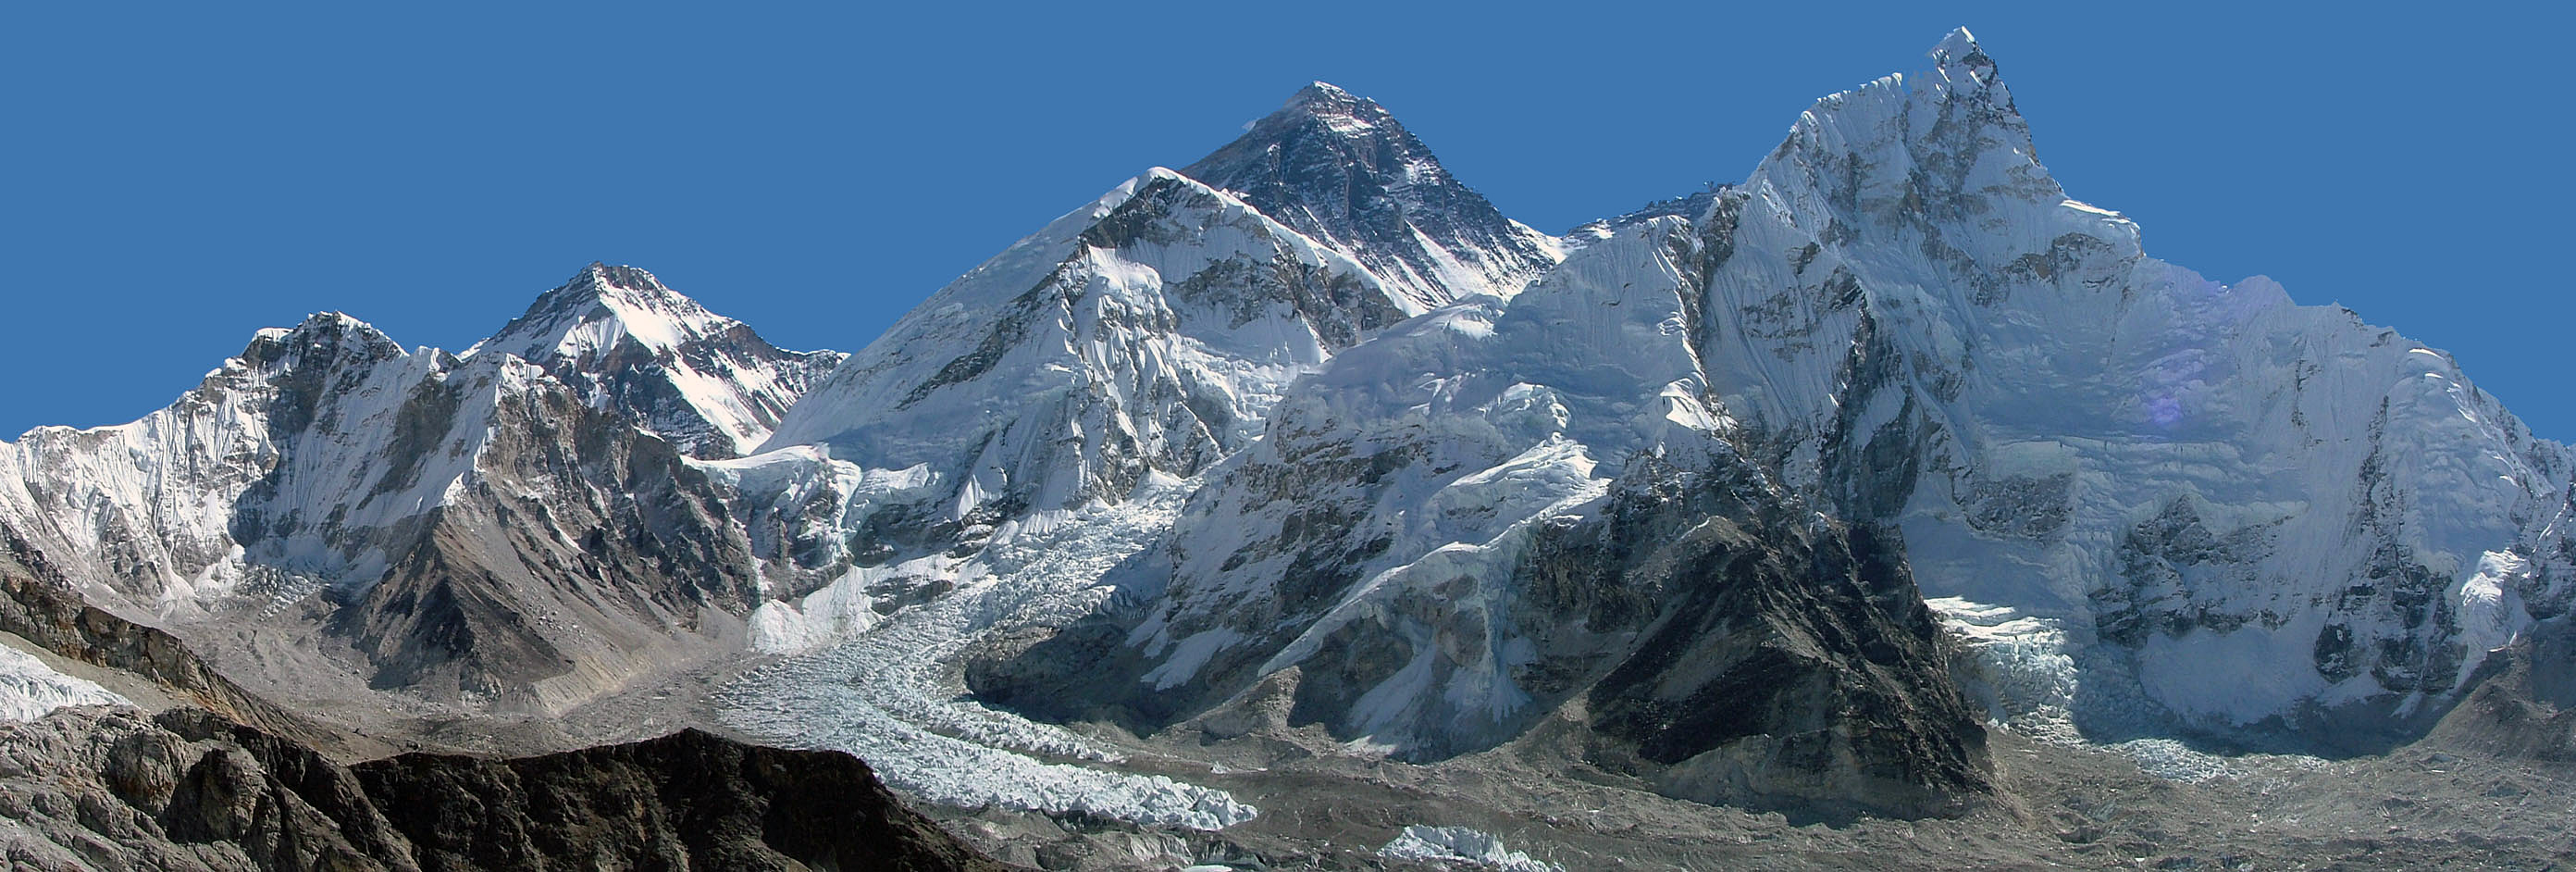 Everest and Khumbu icefall panorama